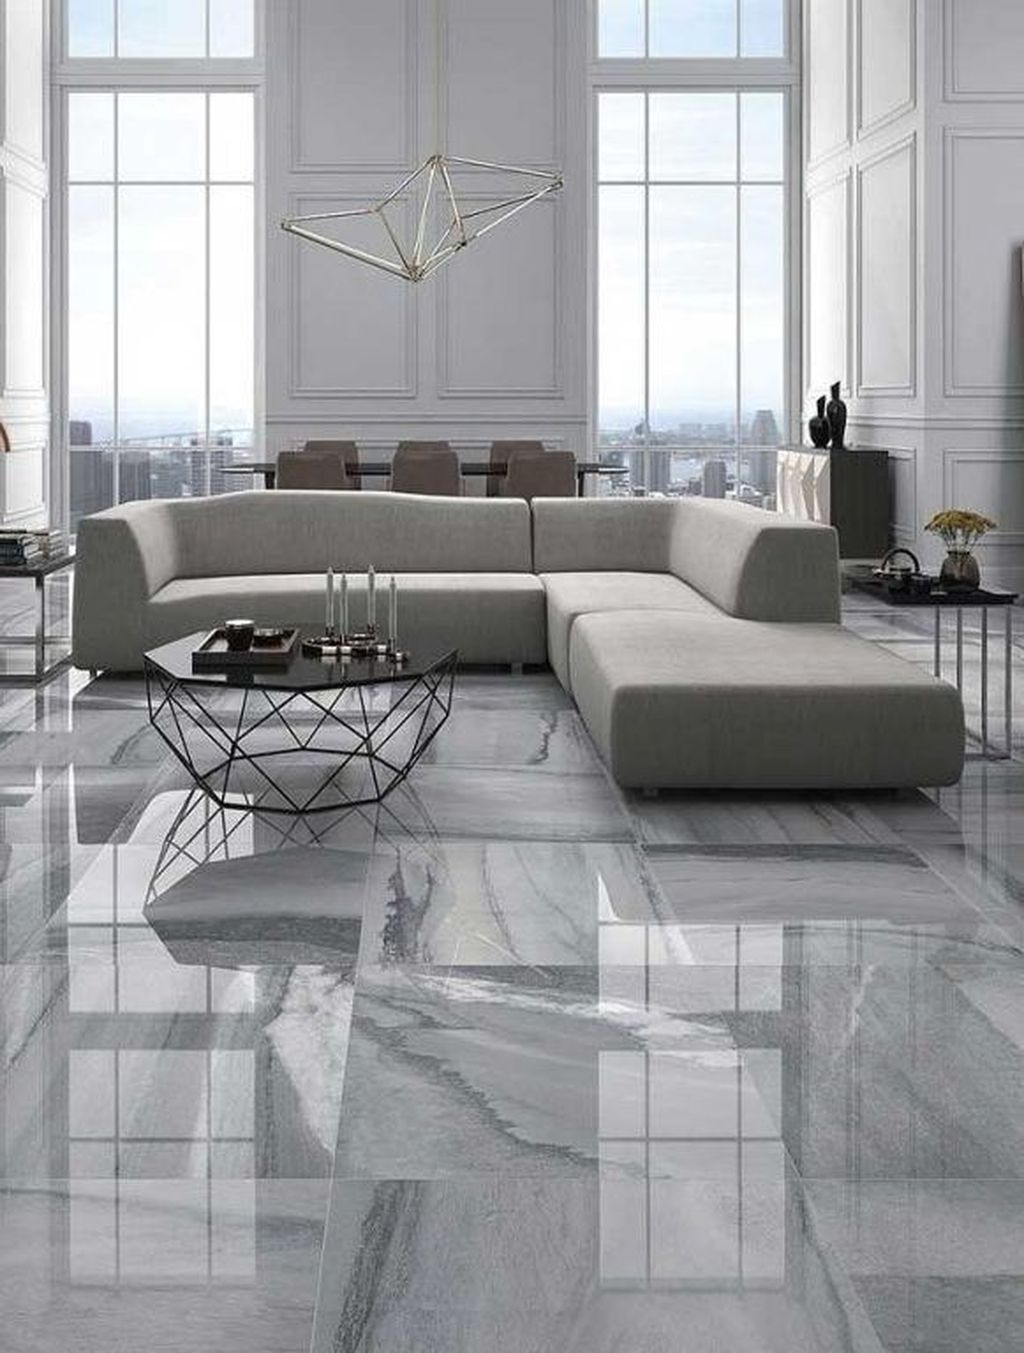 31 Chic Living Room Design Ideas With Floor Granite Tile To Have Chic Living Room Design Living Room Tiles Floor Design Living room tile flooring